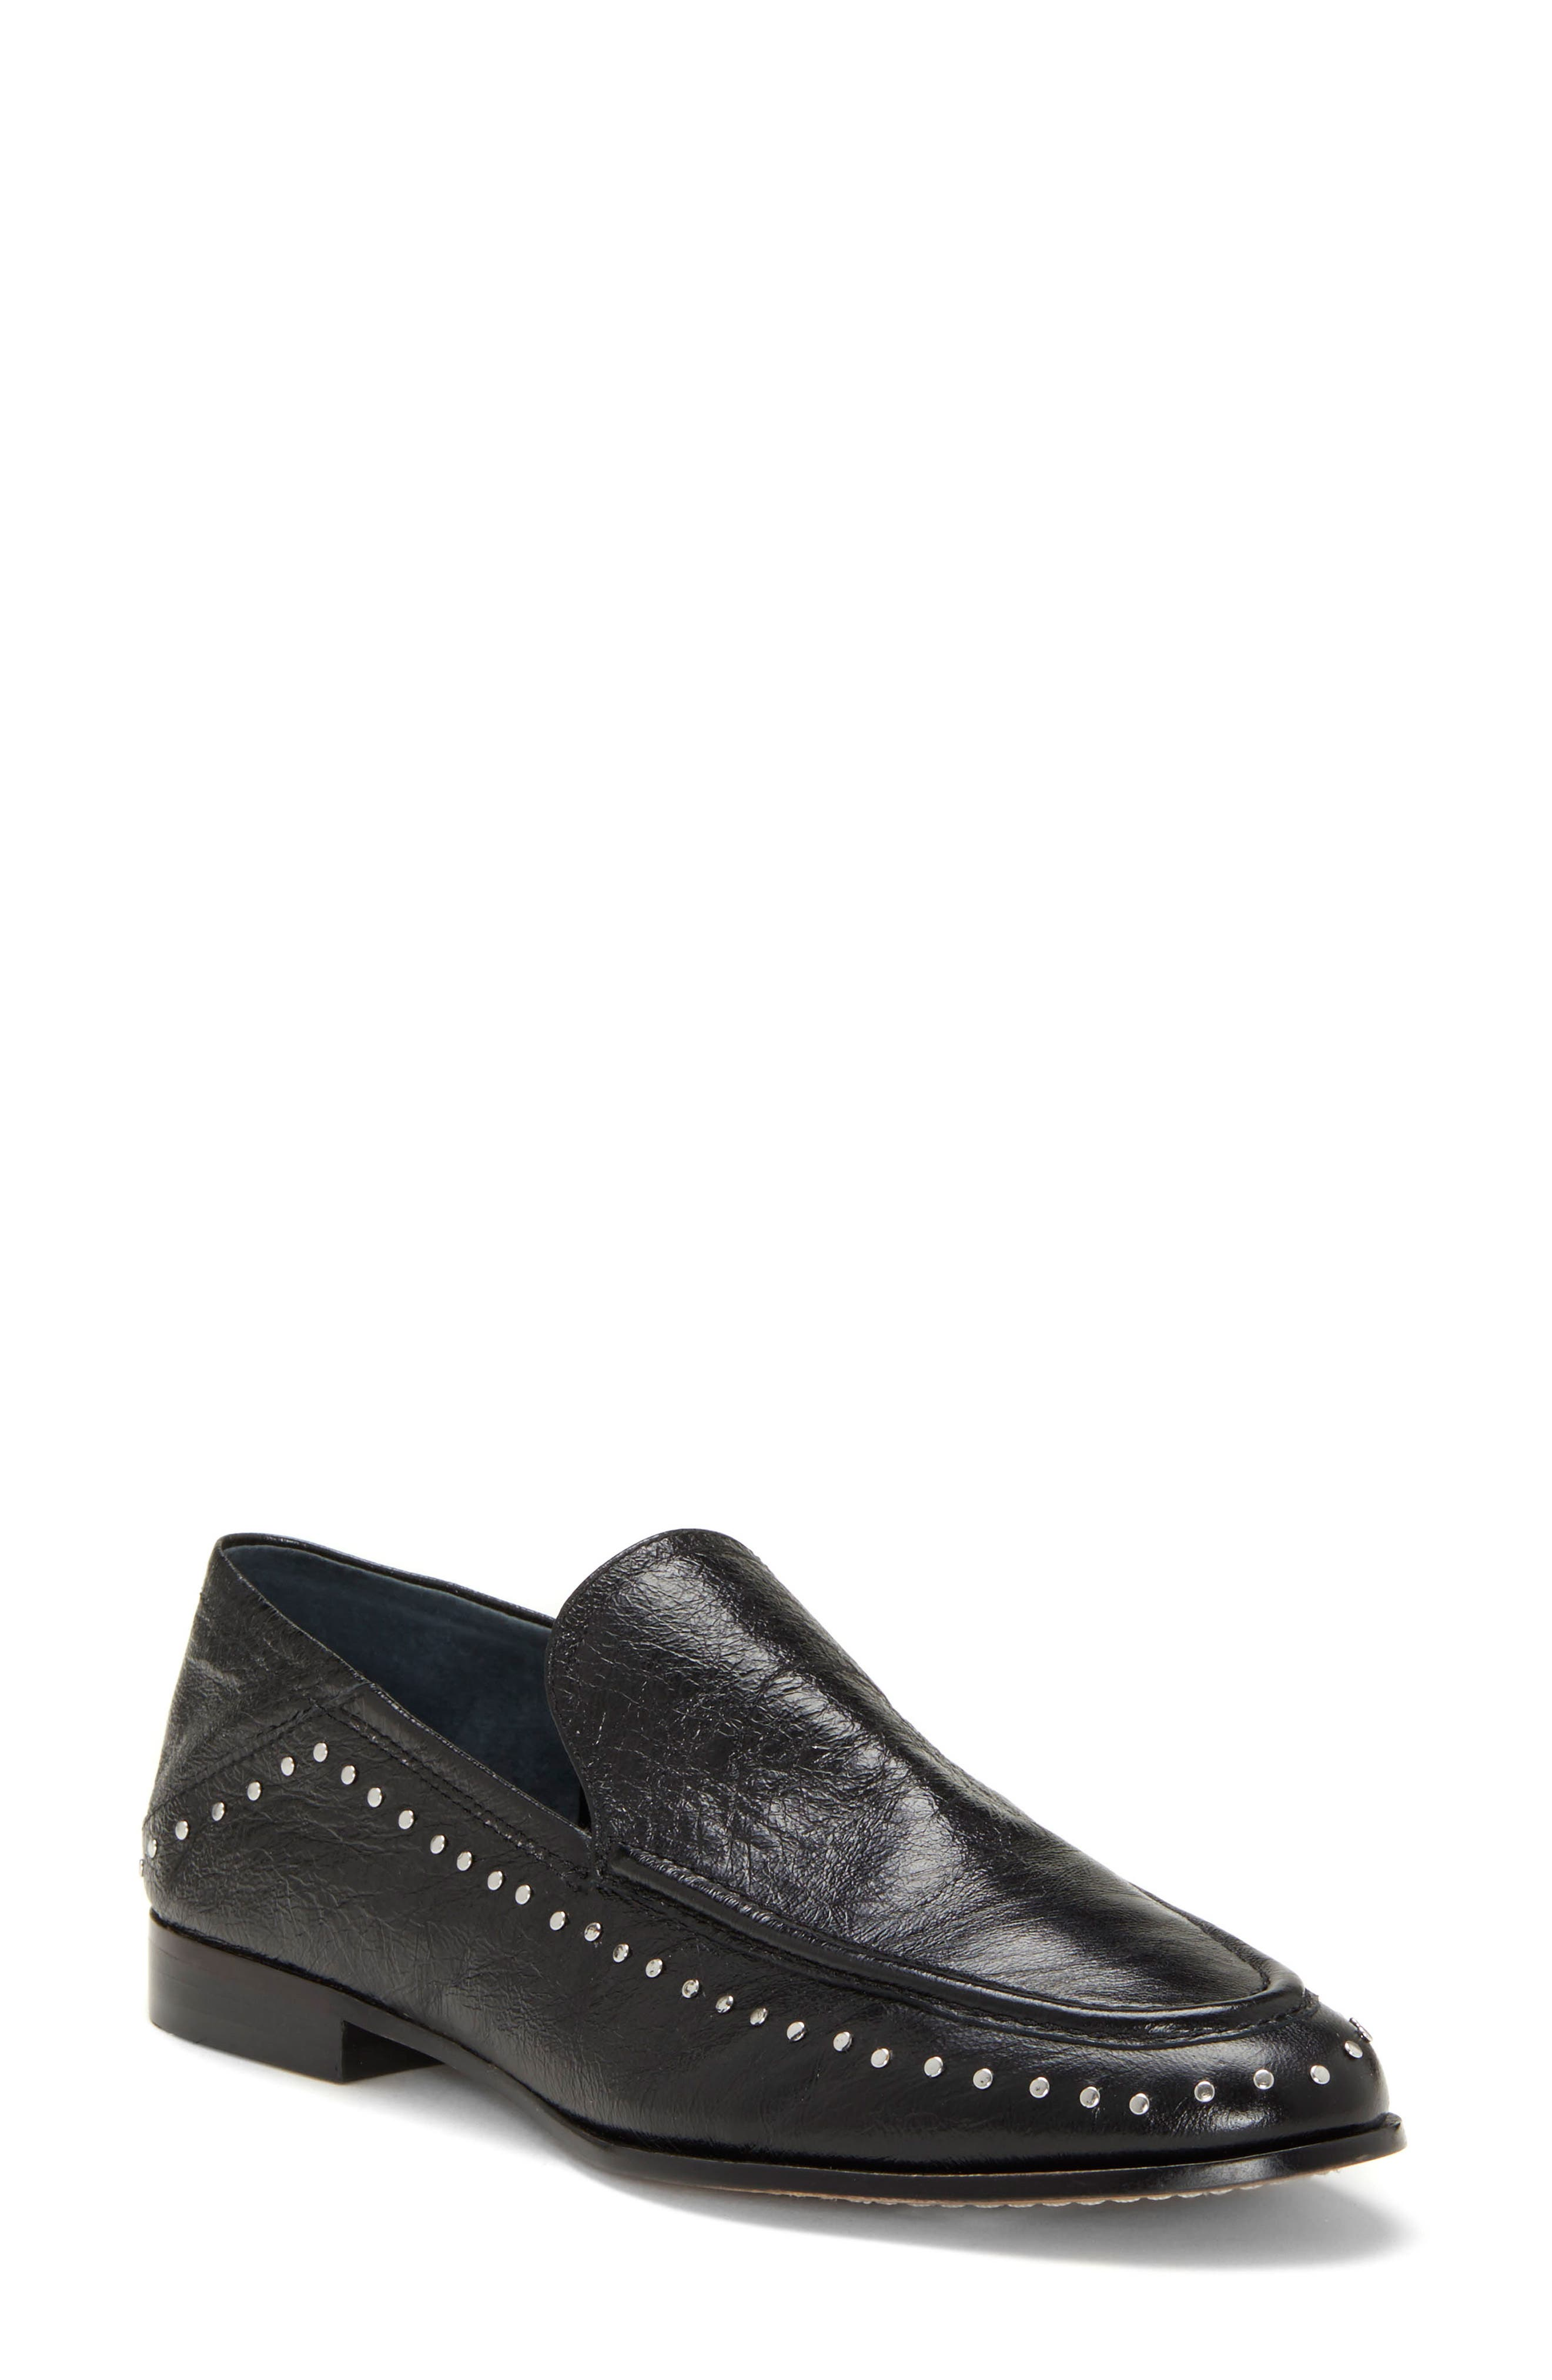 Jendeya Convertible Studded Loafer, Main, color, 001